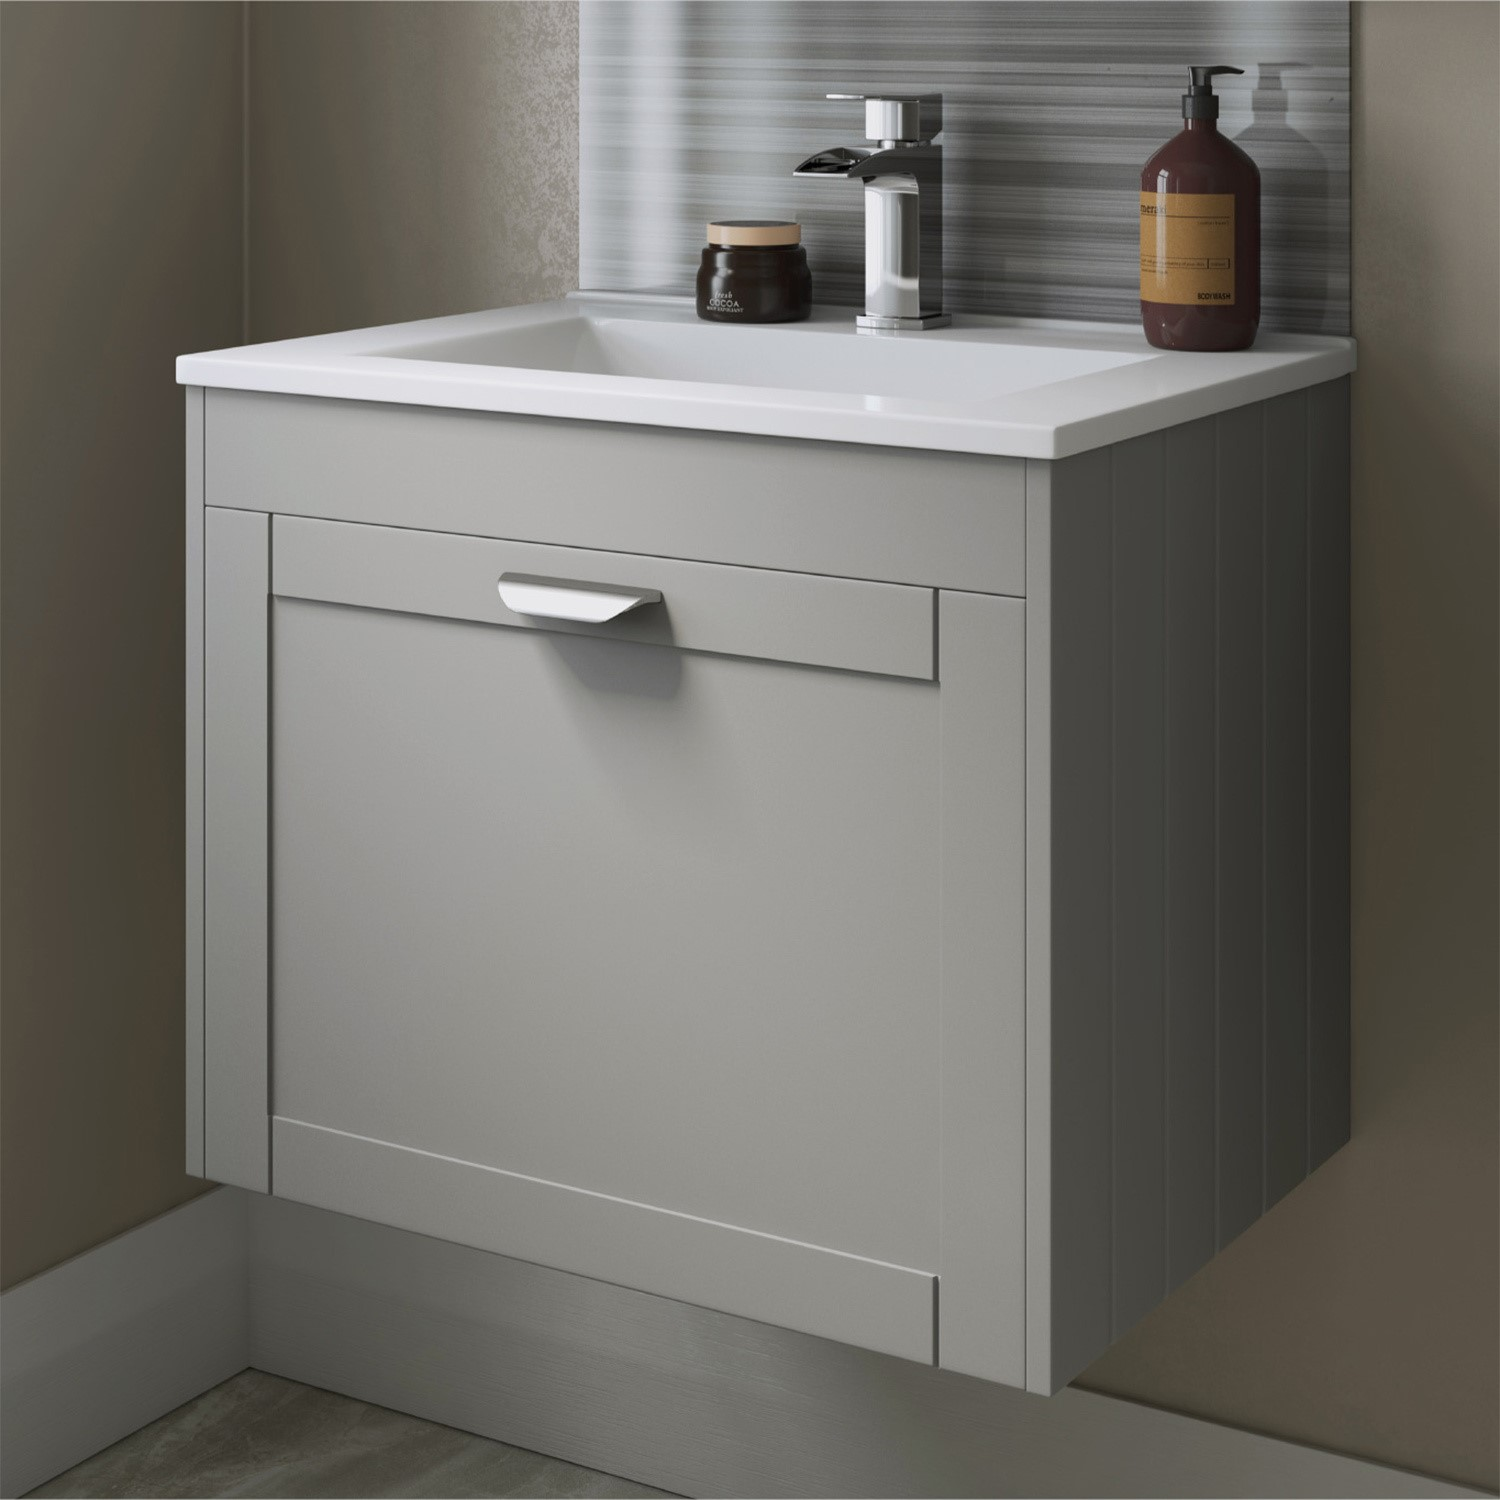 Nottingham 600mm Wall Hung Basin Vanity Unit Grey Single Drawer Modern Handle